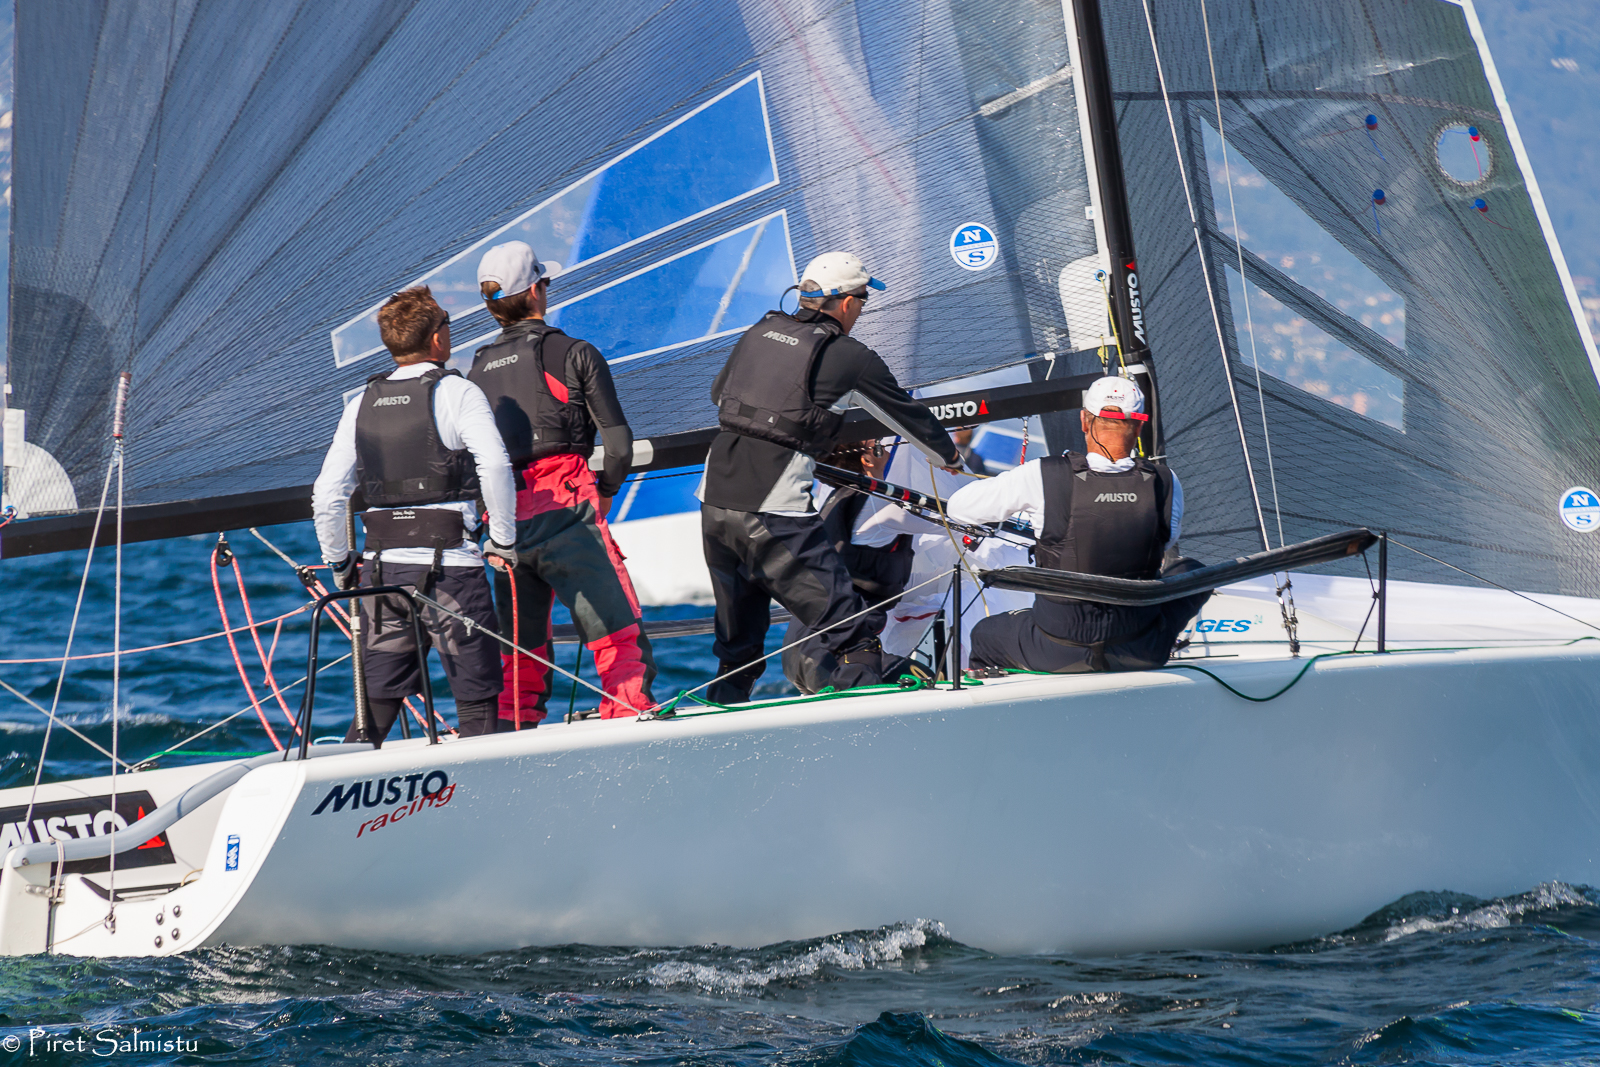 Eddy Eich's Musto Racing (GER) with Kicker Schäfer helming